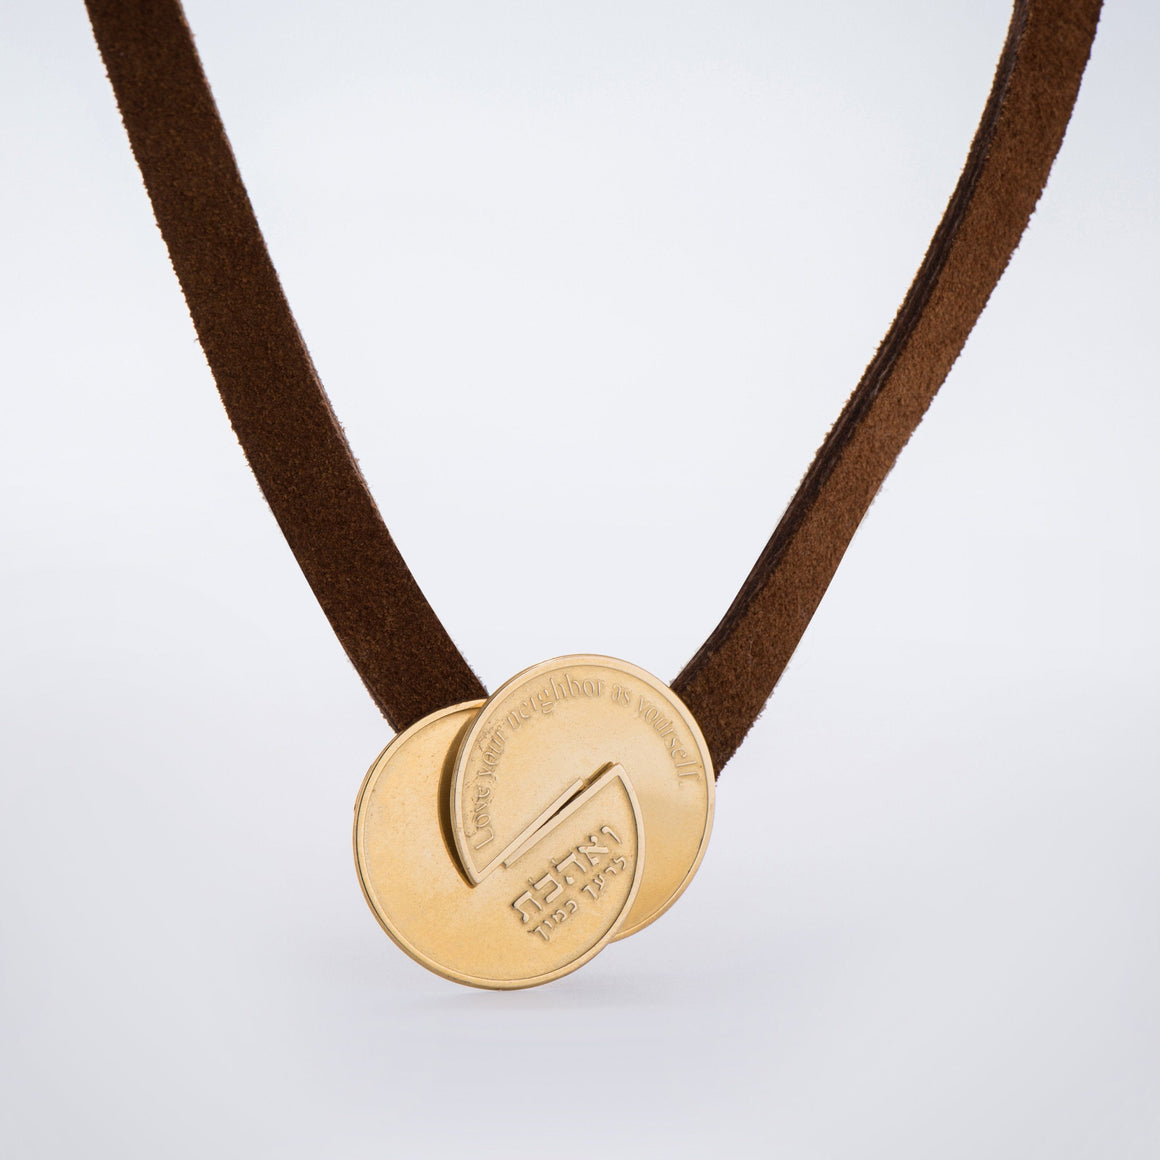 Unisex Necklace, Leather Necklace, Gold Necklace,